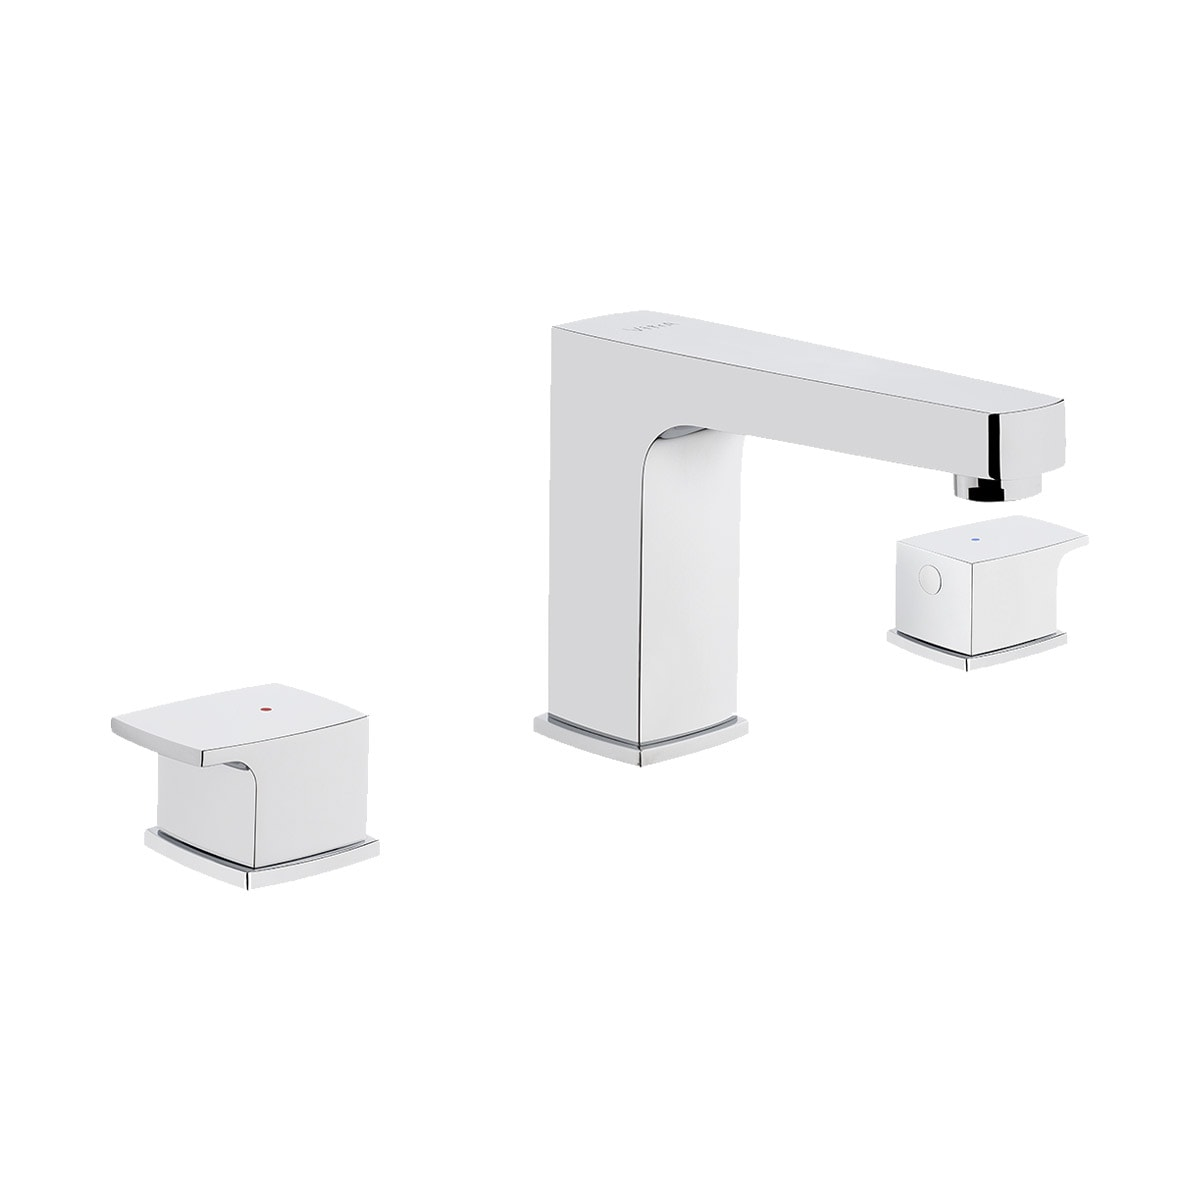 Q-Line Basin Mixer (for 3-hole basins)